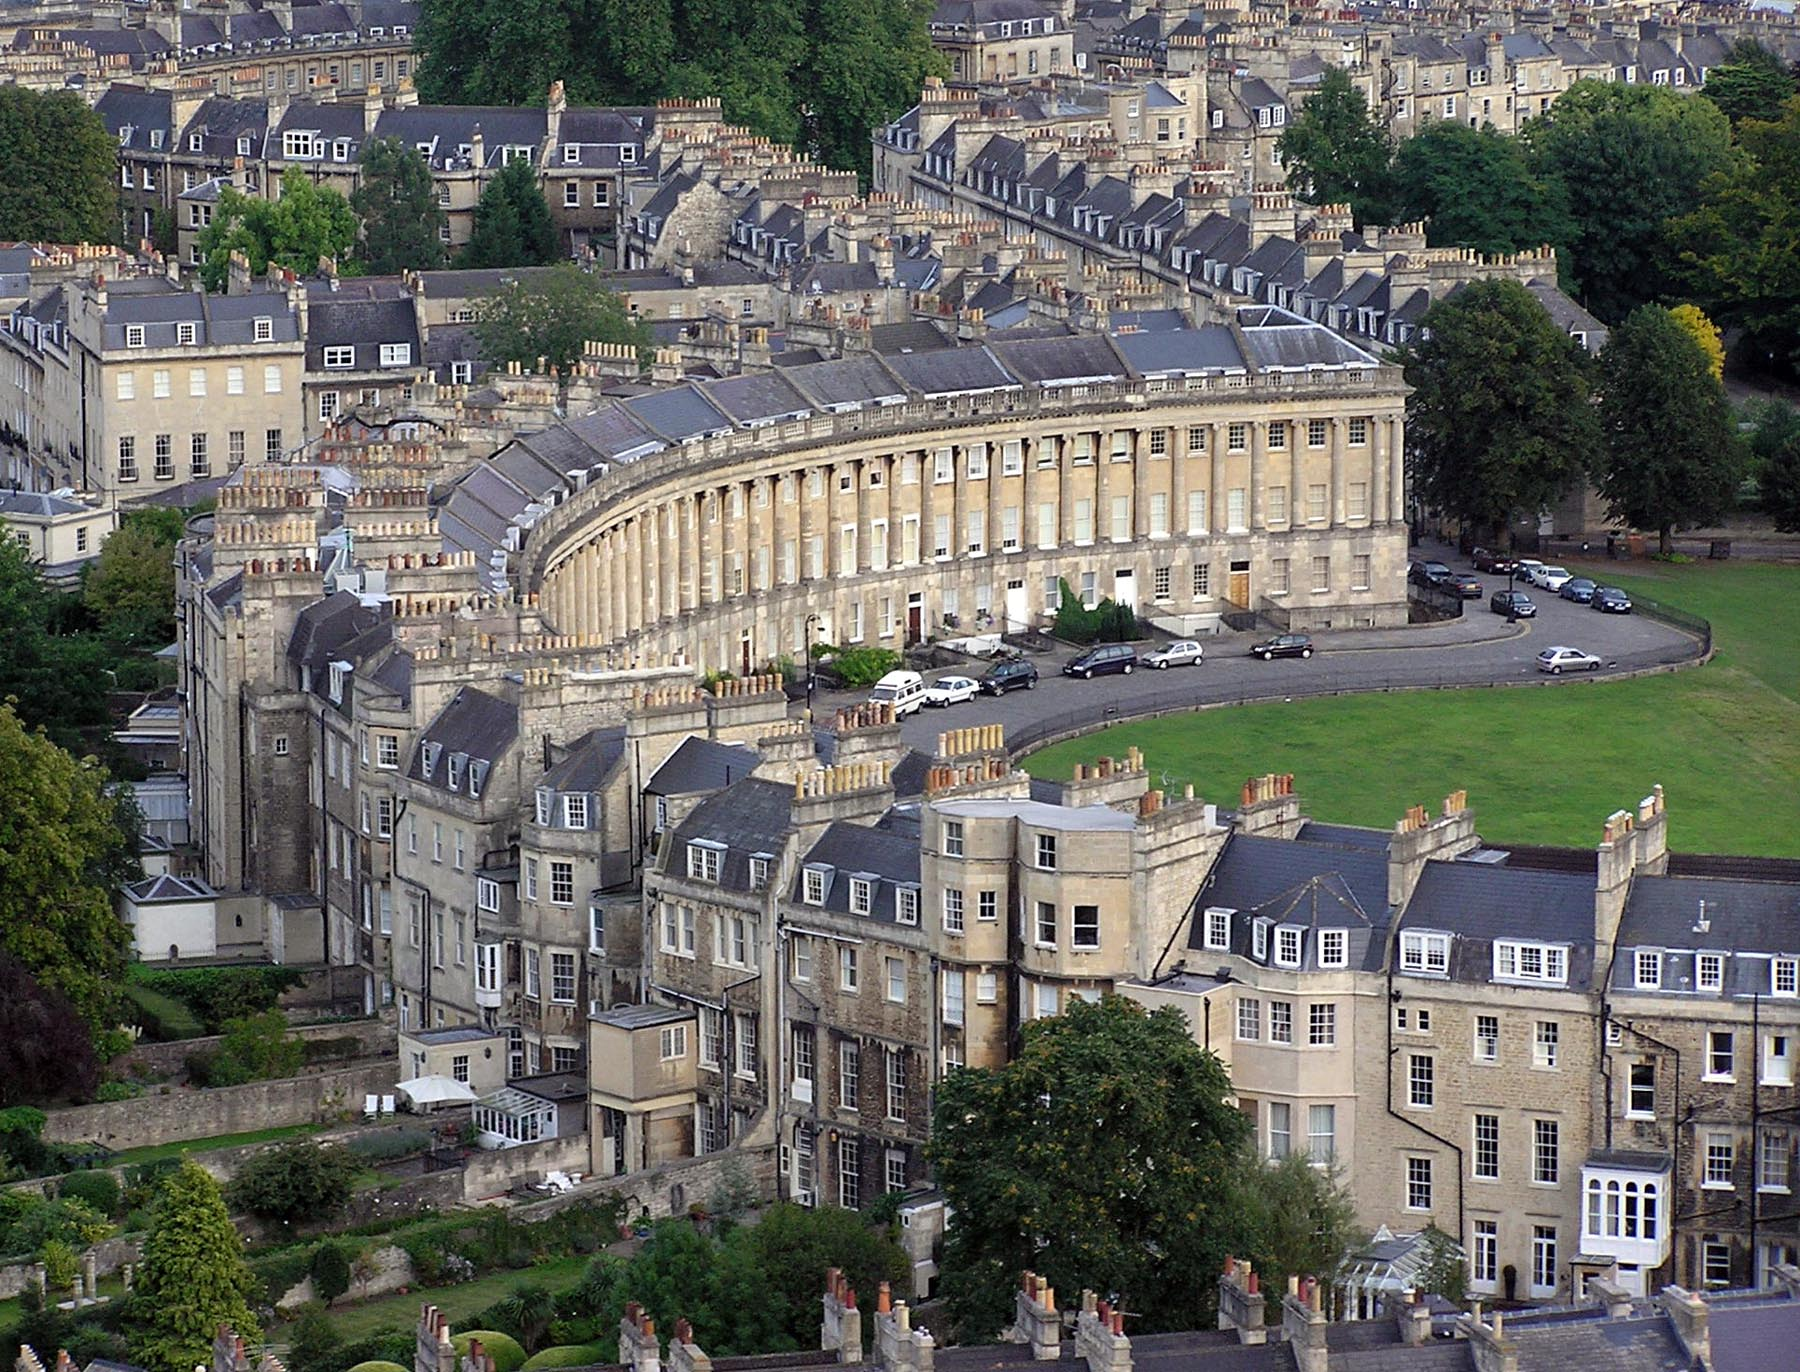 Aerial View of Royal Crescent Hotel, Bath, England | William T. Baker